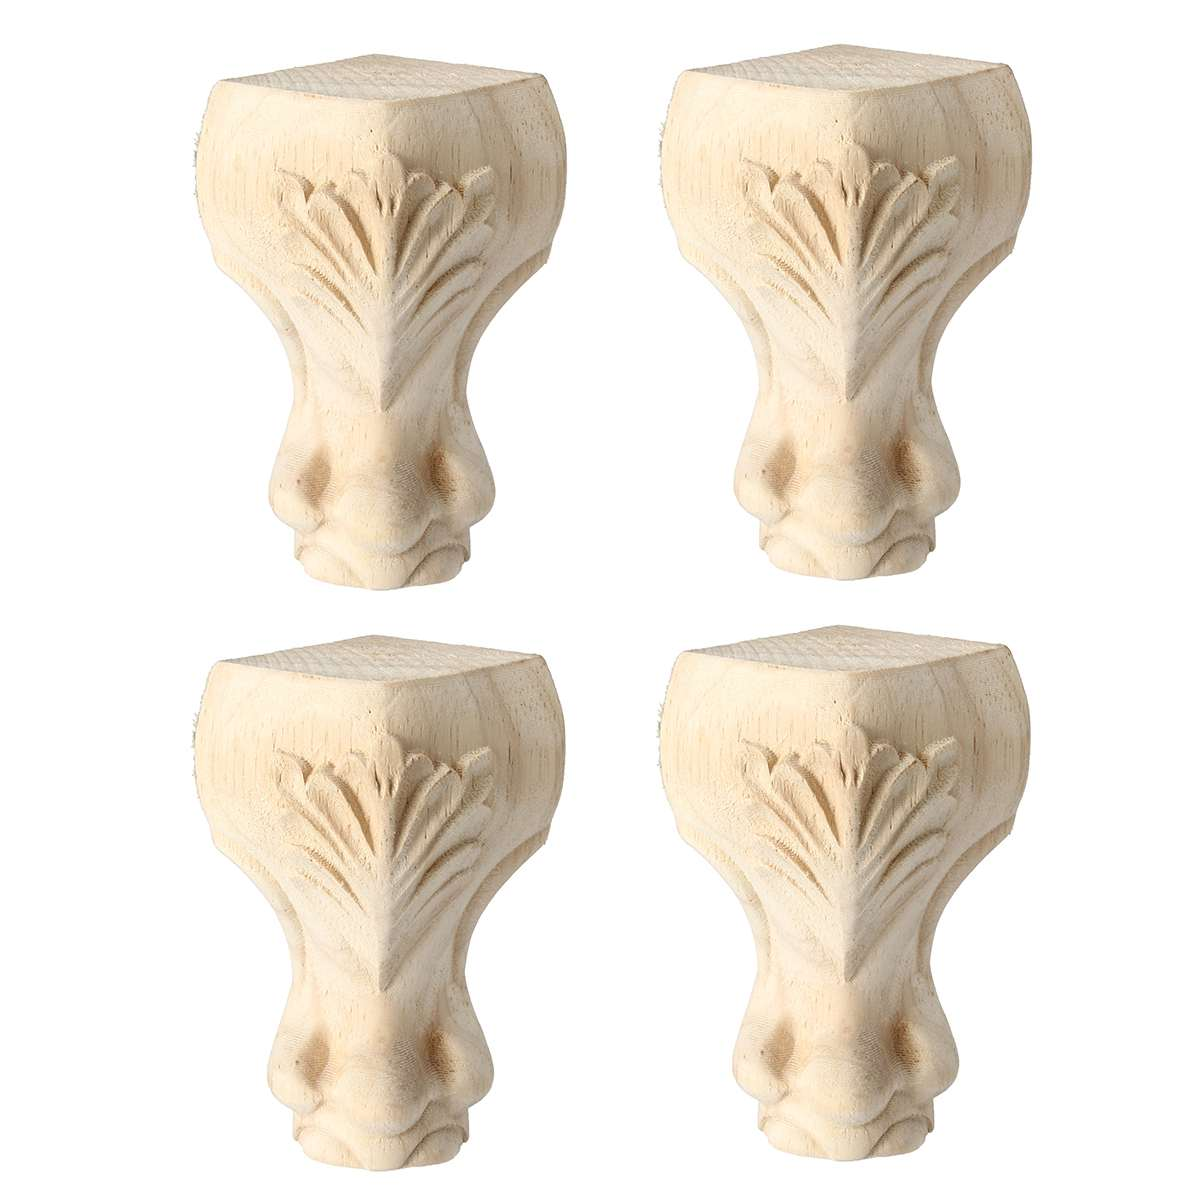 4Pcs/set 15x6cm 10x6cm Furniture Legs Wooden European Style Solid Wood Carved Sofa TV Cabinet Seat Feets Furniture Foot Legs